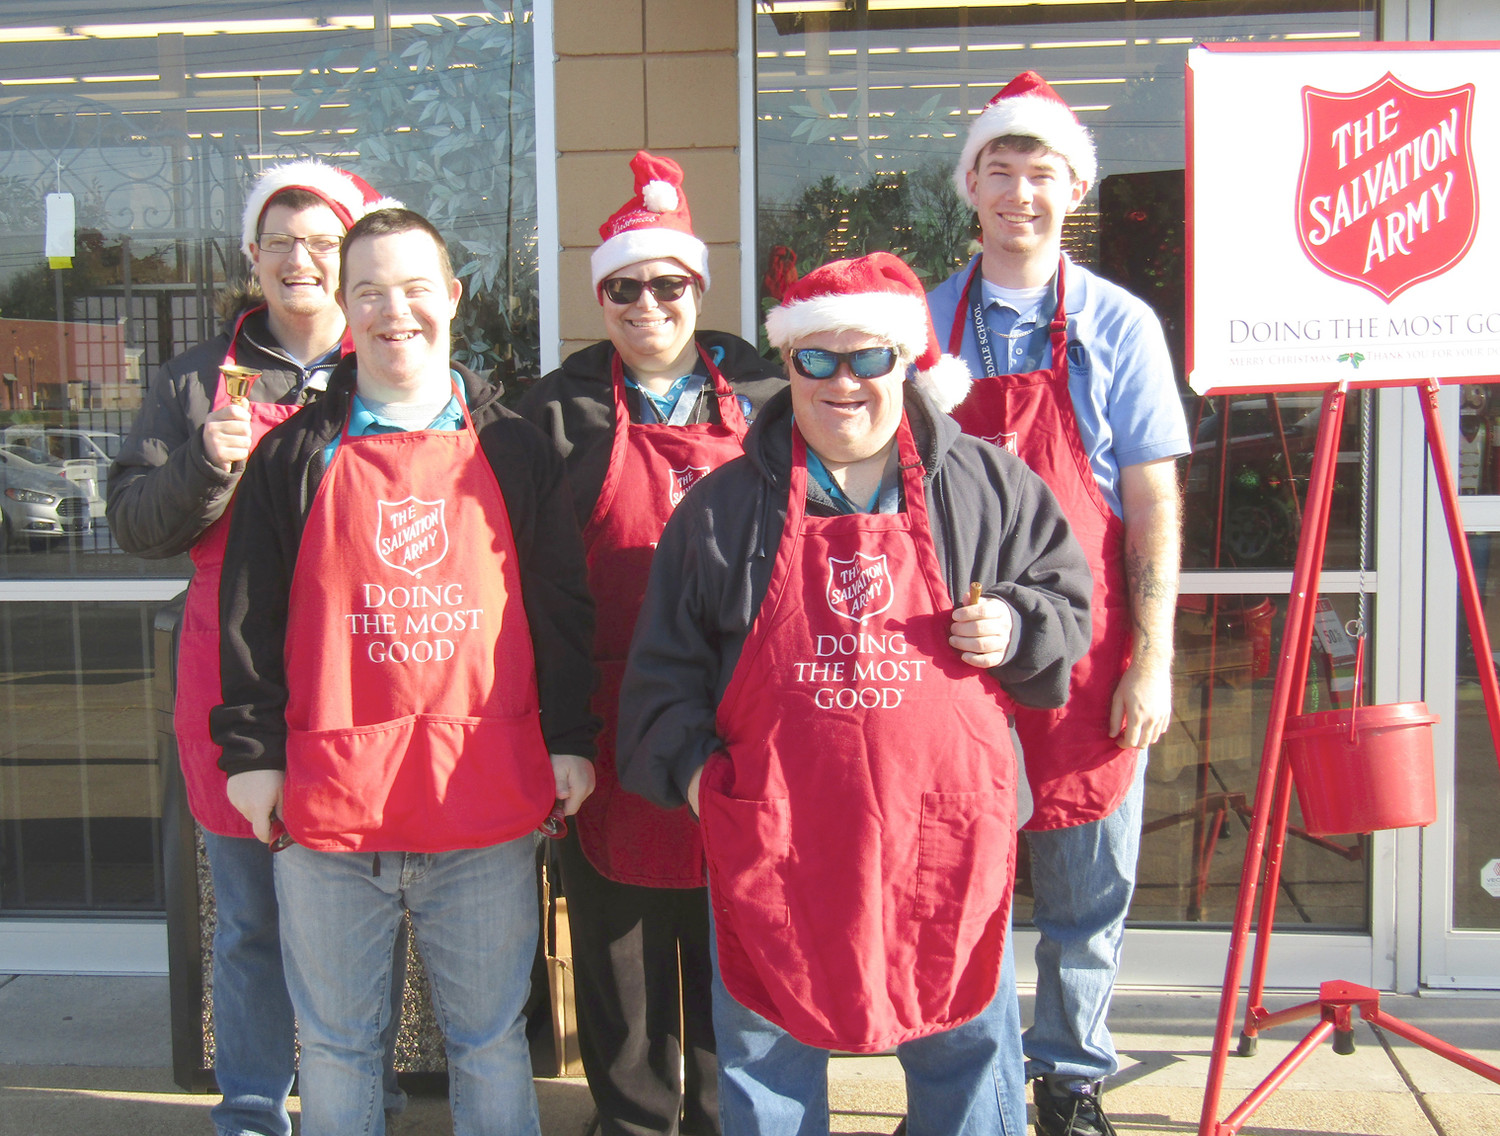 rousdale School students donned their Christmas best Wednesday morning, as they helped fill the Salvation Army kettles in front of Hobby Lobby. In front are Brady Hammand and Chris White. In back are Chris Stamey, Jessica McFarland and Eric Peterson.